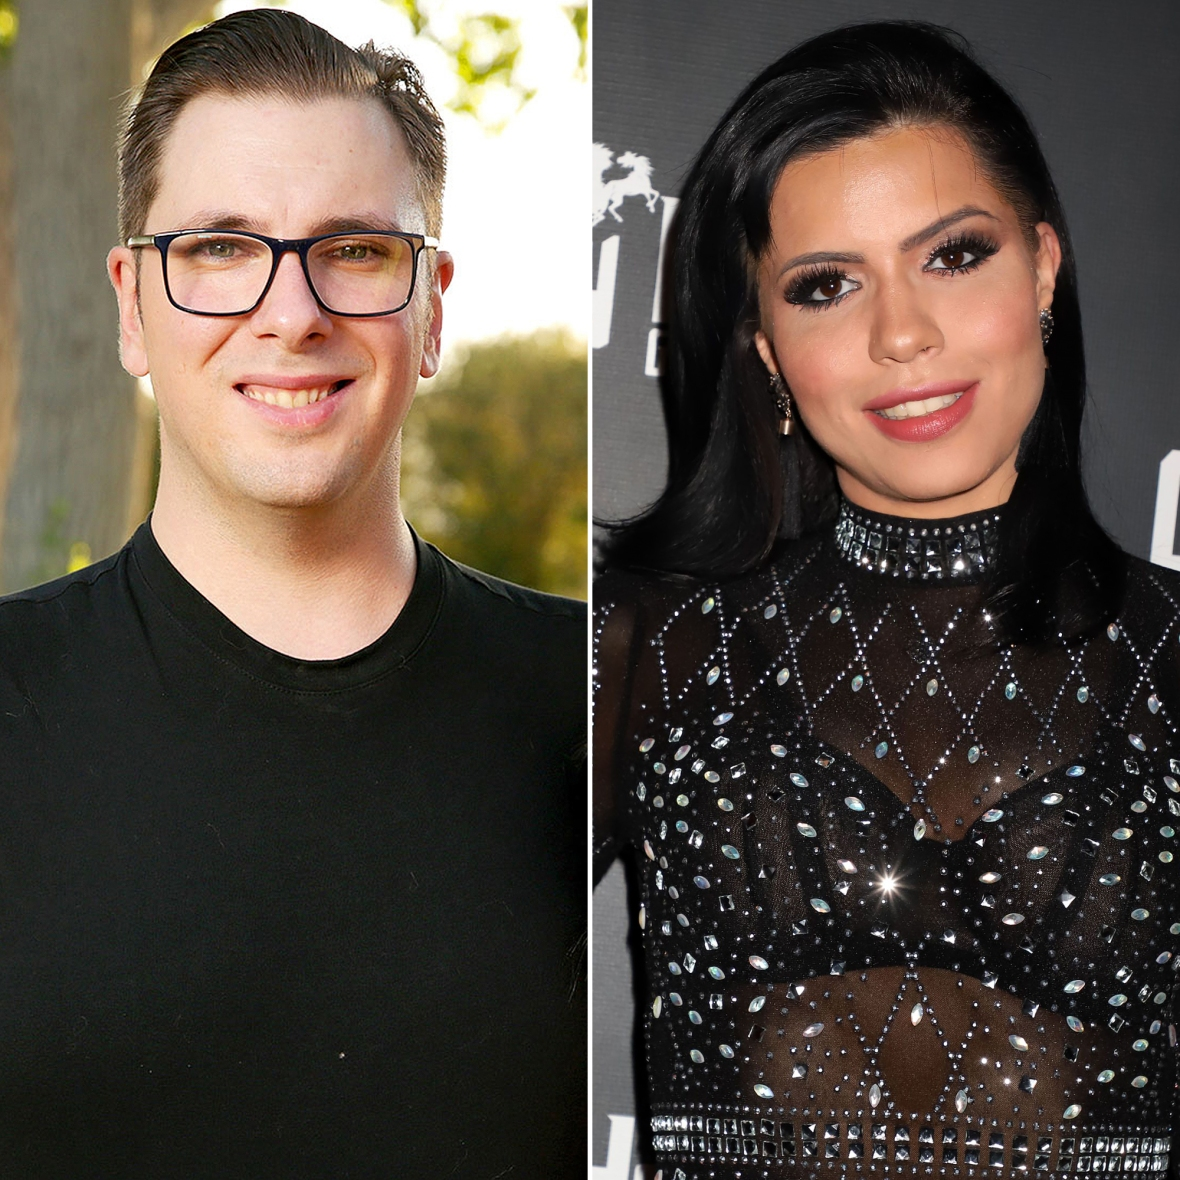 90 Day Fiance's Colt Johnson Speaks Out About Ex Larissa Dos Santos Lima's Transformation: 'Every Week There's a New Surgery'